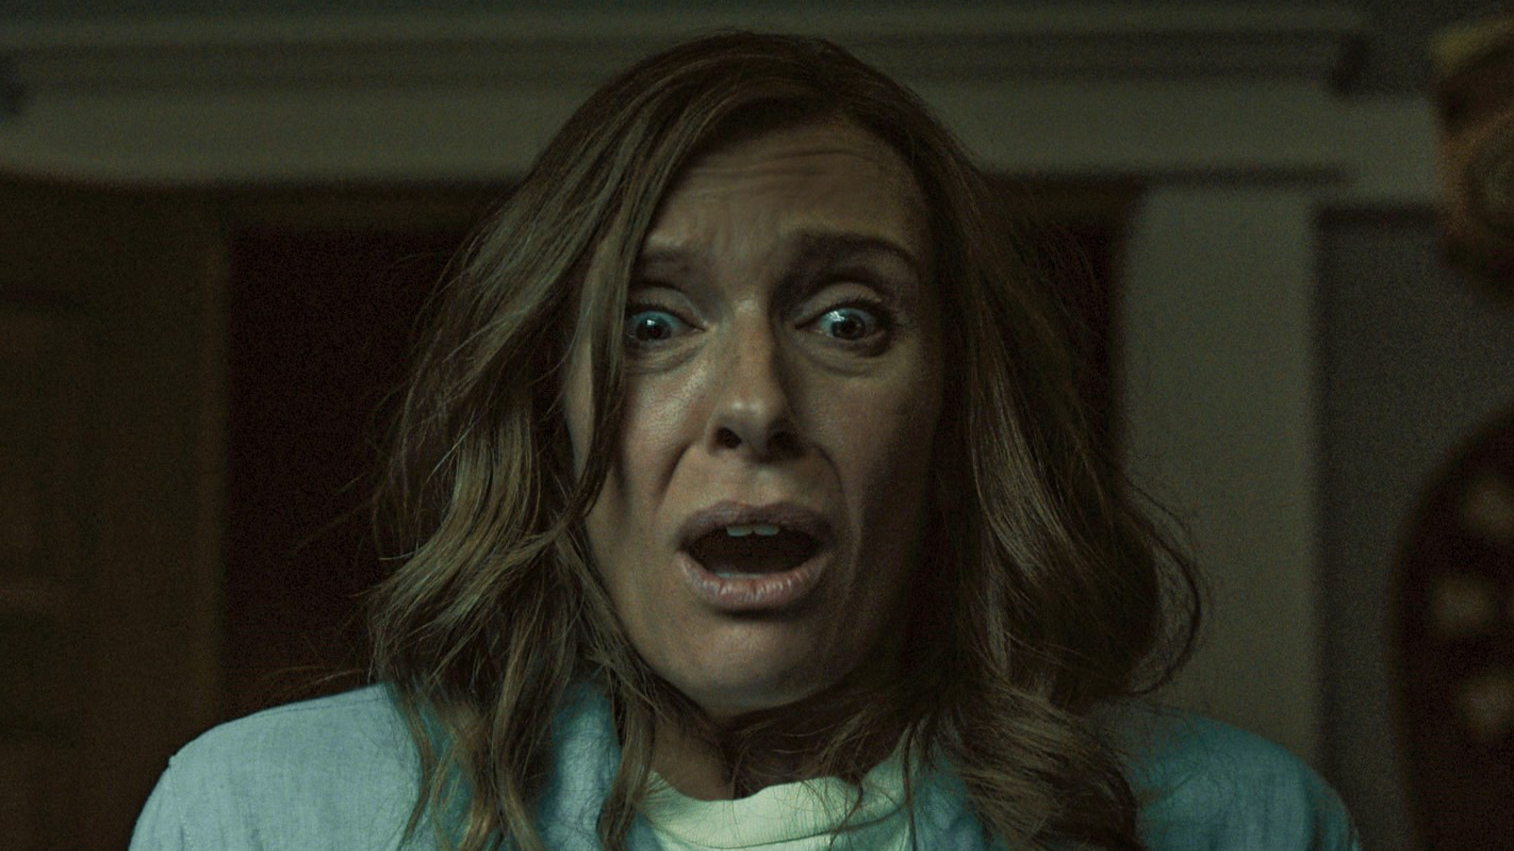 Watching Horror Movies Can Help People Cope With Anxiety